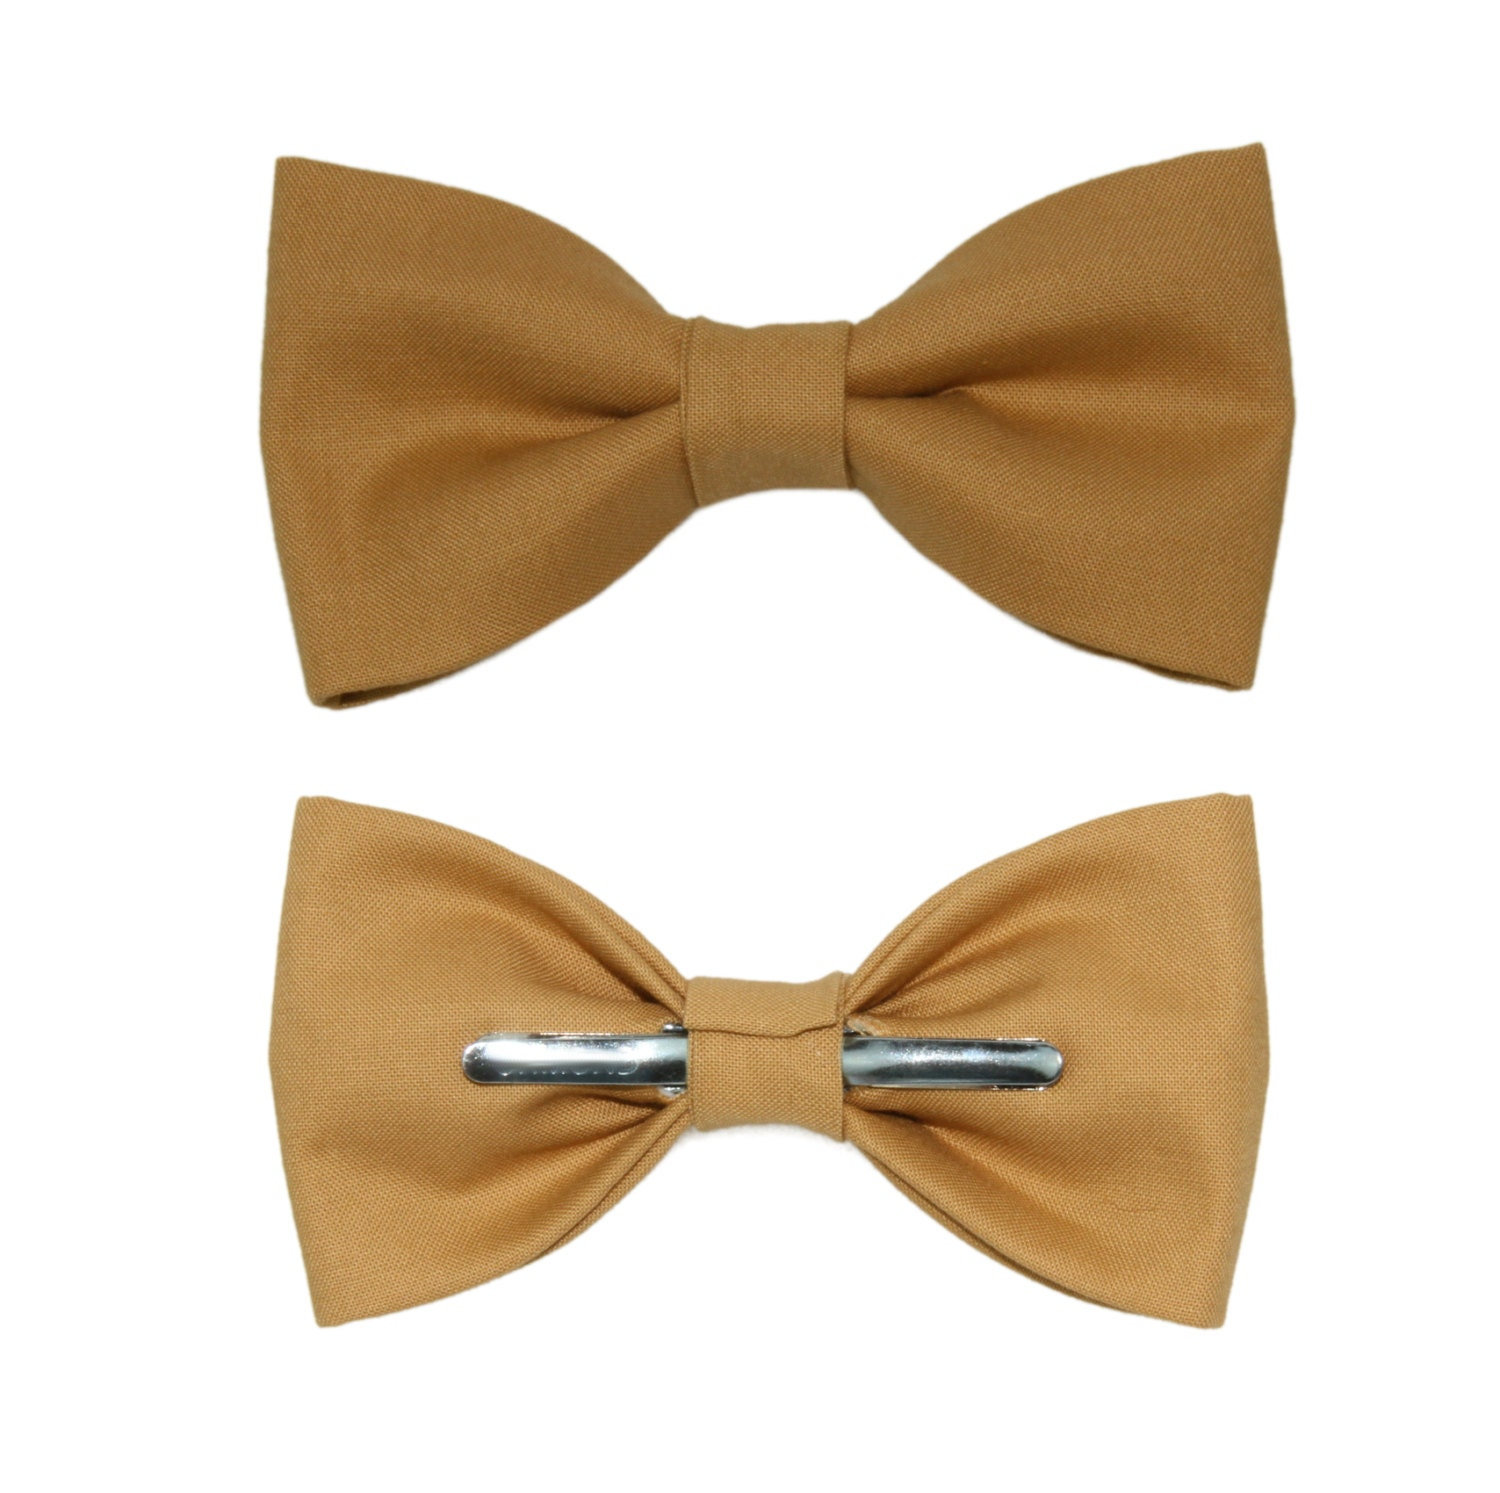 Honey Brown Clip On Cotton Bow Tie Choice Of Men's Or